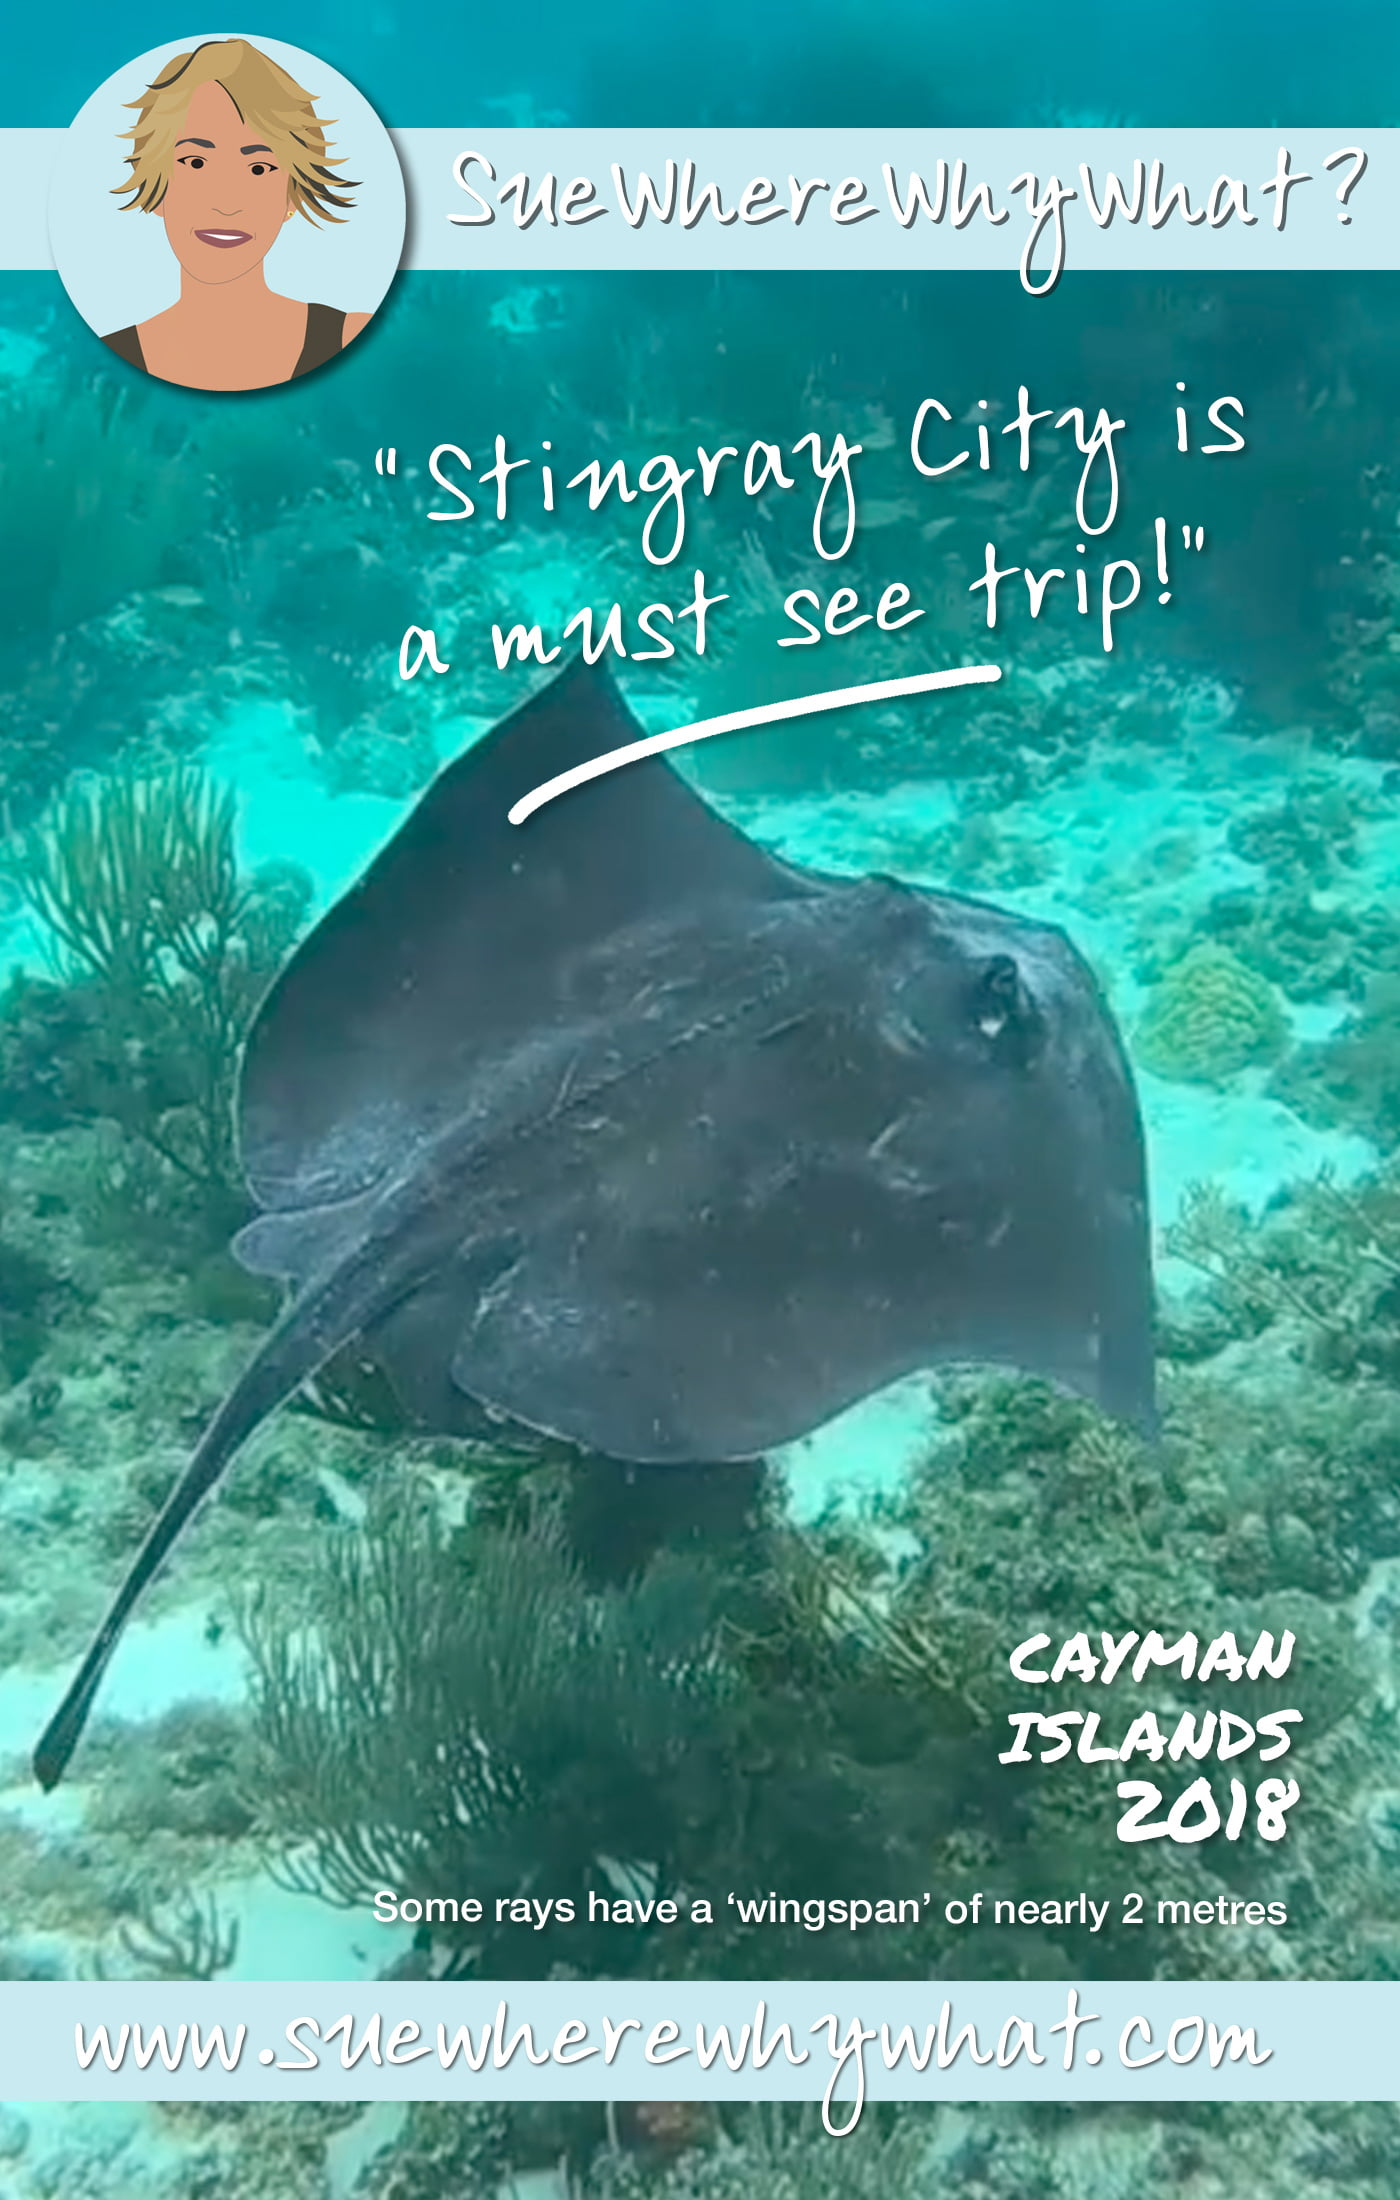 All You Need To Know About Housesitting...in Grand Cayman offers an opportunity of Free Accommodation while living like a local in locations across the world.  Includes Pet Sitting, Things To Do in Grand Cayman in the Caribbean, Seven Mile Beach, Snorkeling with Sting Rays in Sting Ray City